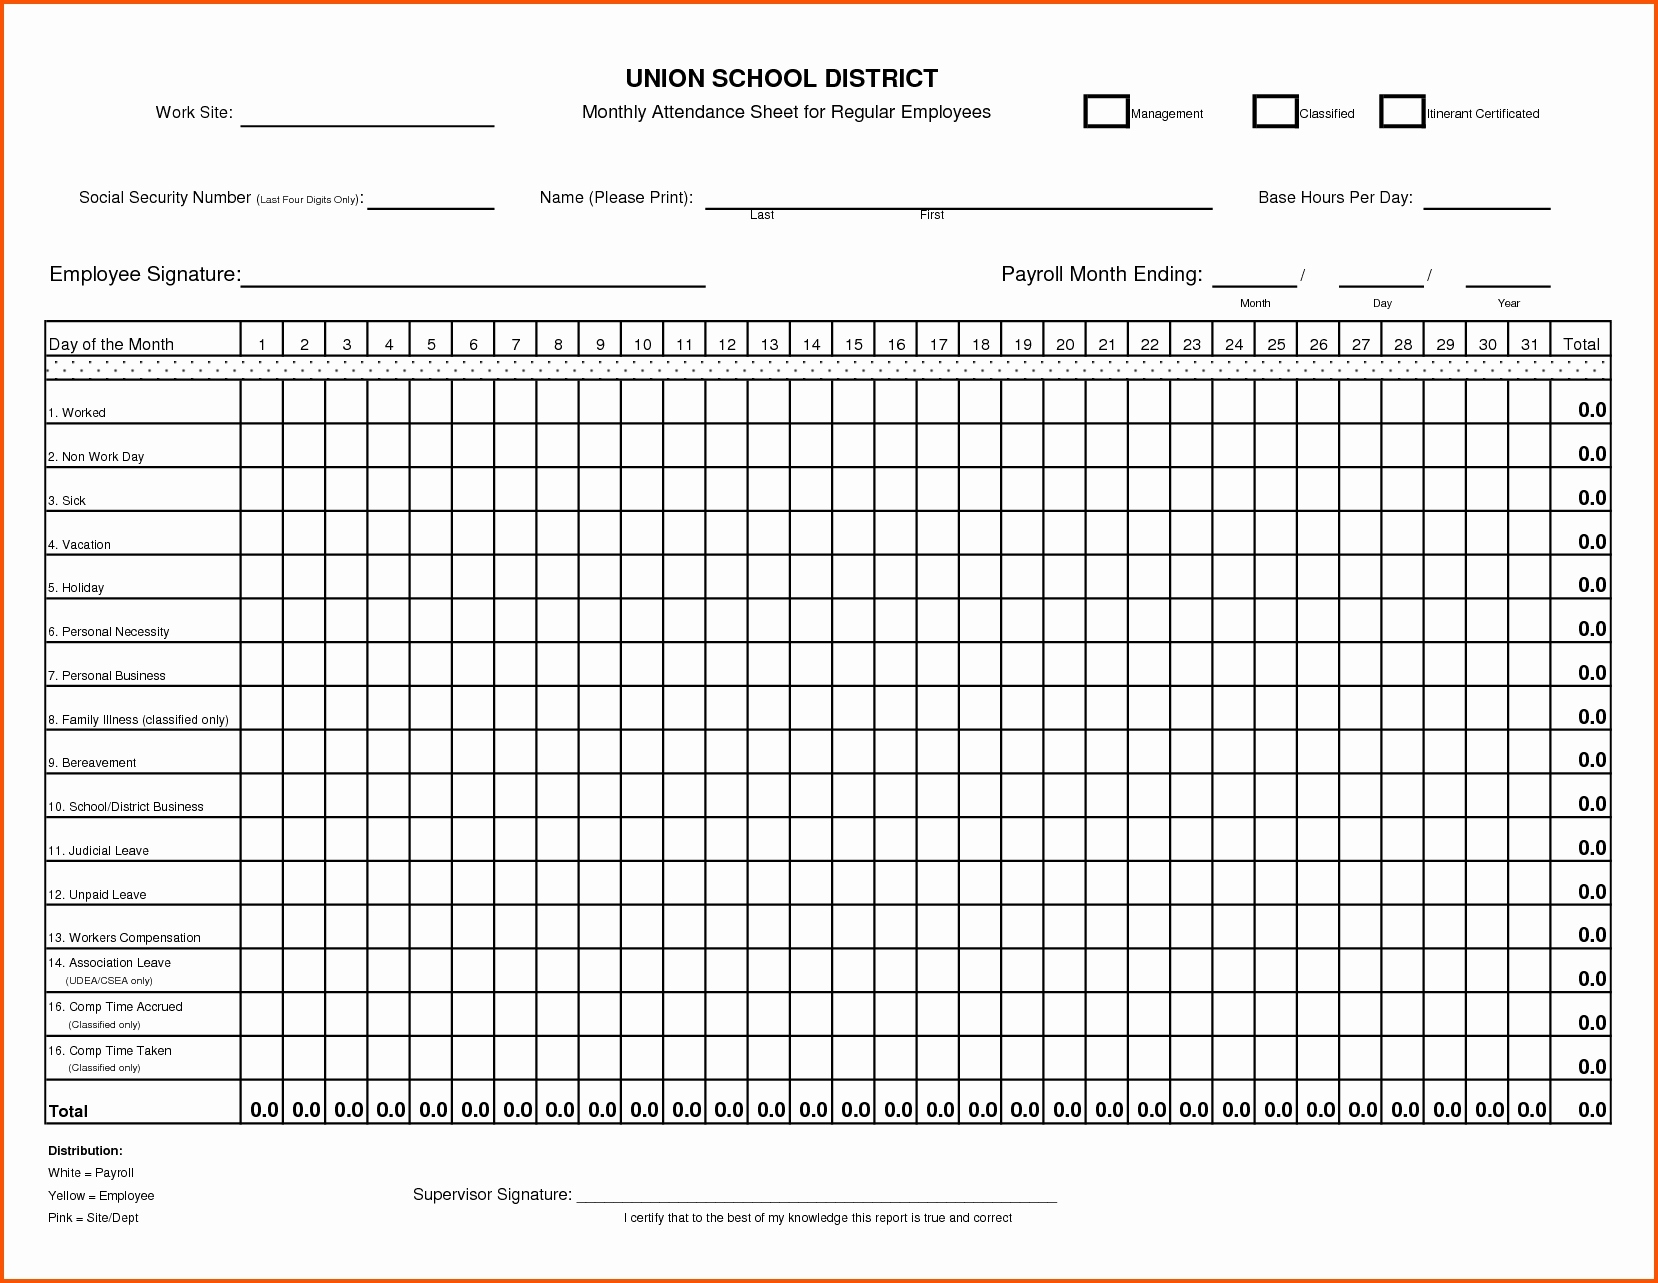 Time Calculator Spreadsheet Regarding Time Clock Spreadsheet With Free Download Plus Sheet Template